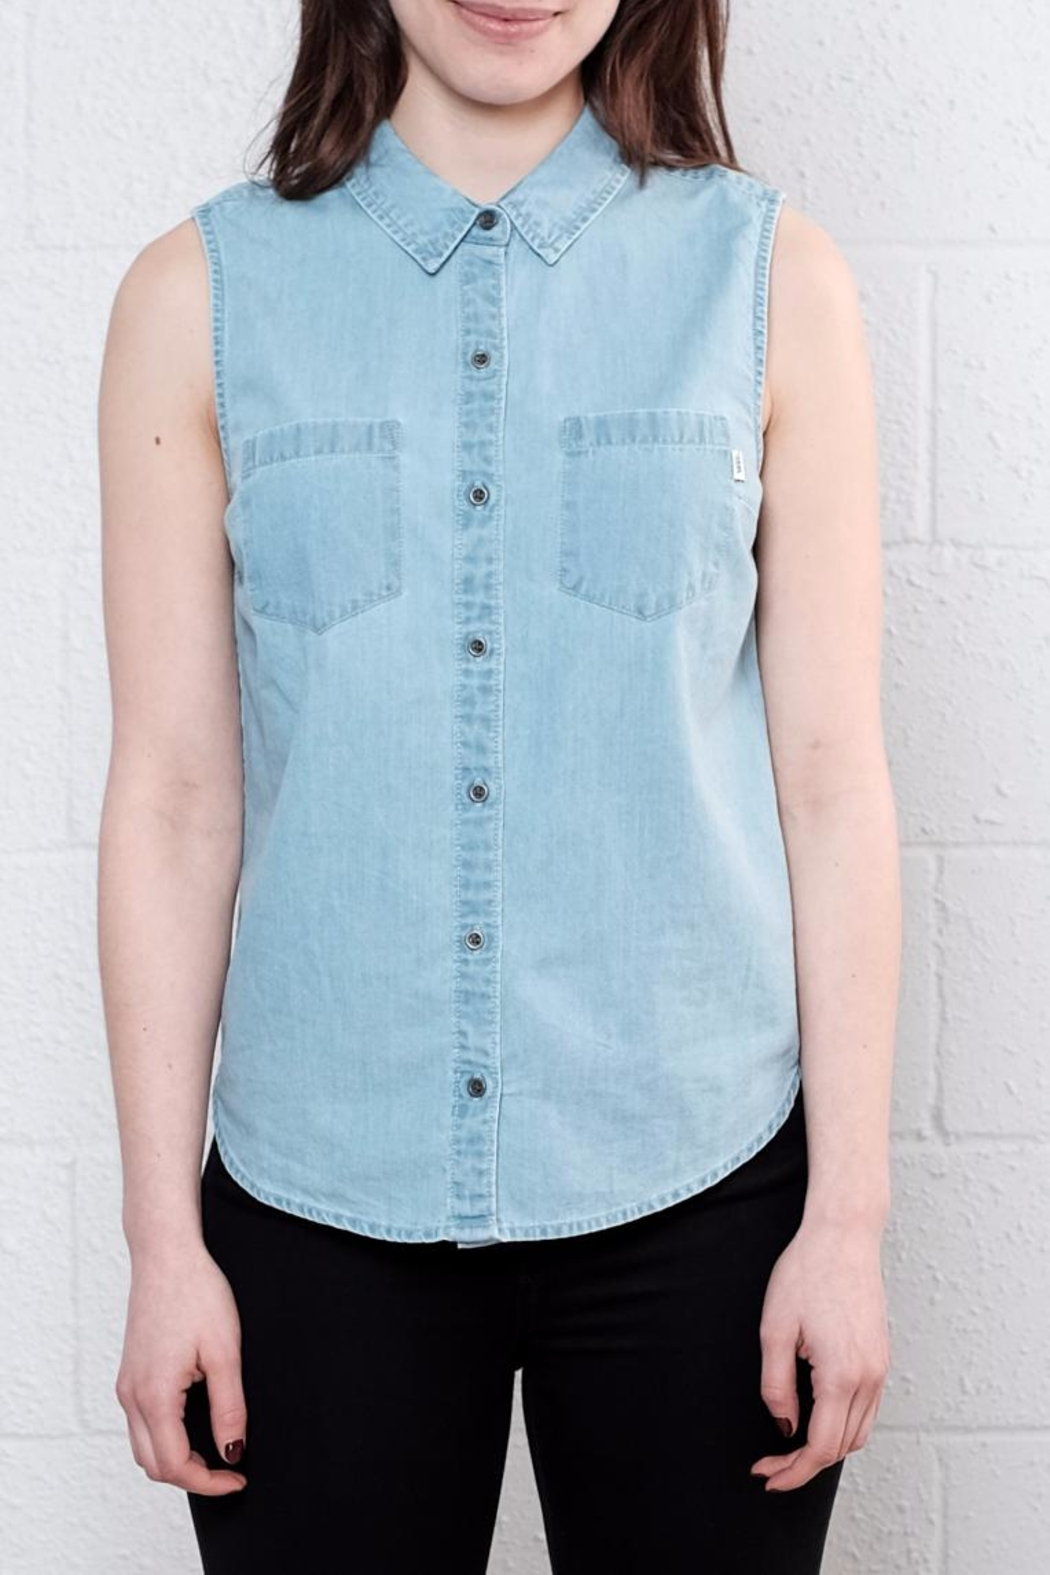 Meetings, lunch dates, and after hours cocktails could all use the Courtesy Collar Blue Chambray Top! Deep blue chambray is perfectly lightweight across a collared neckline, and sleeveless, darted bodice with hidden button placket (and slit at back).